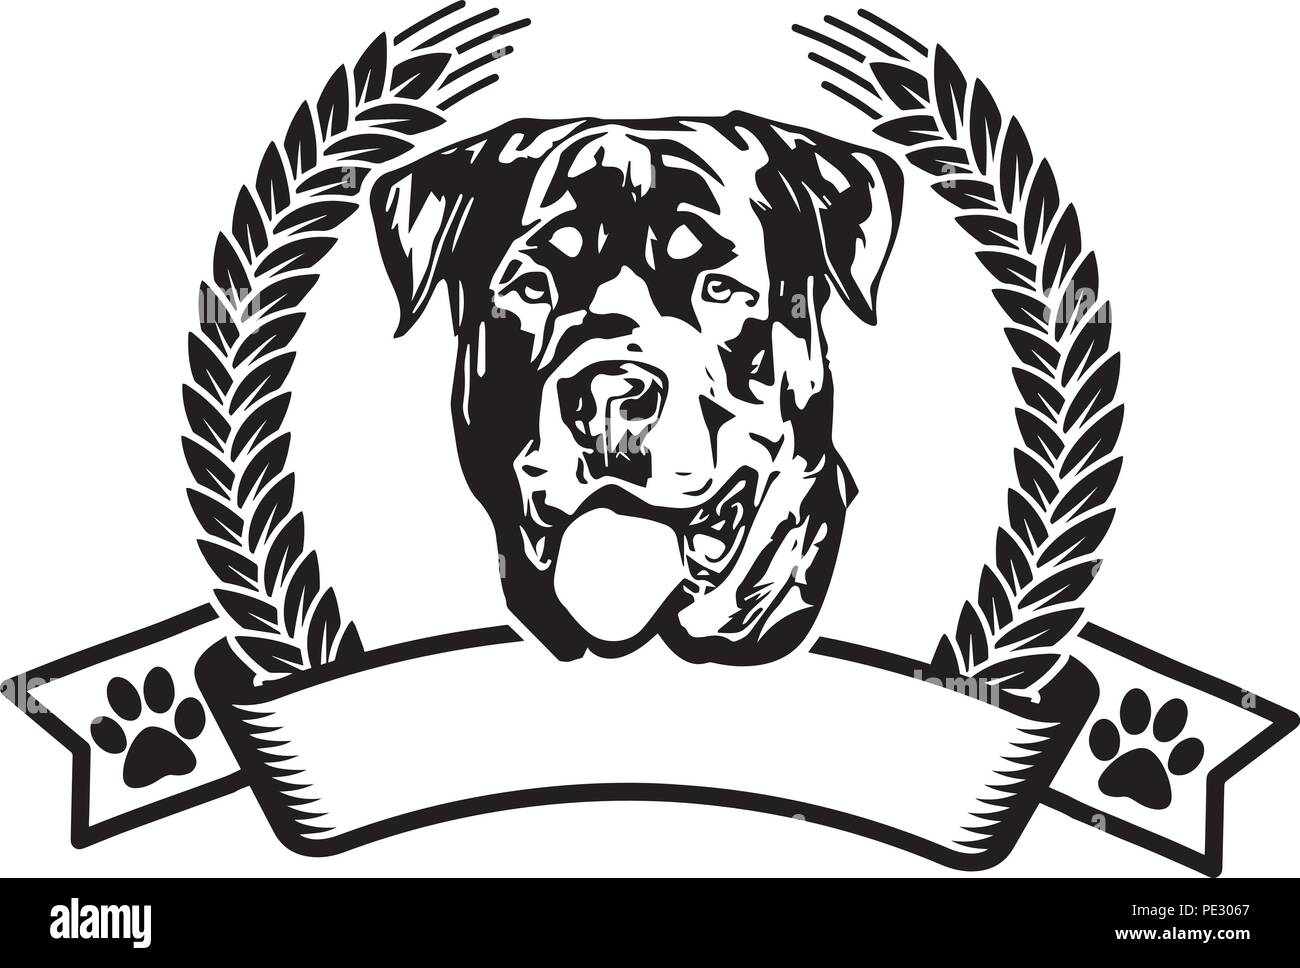 Rottweiler Rotty Dog Breed Pet Puppy Isolated Head Face - Stock Image